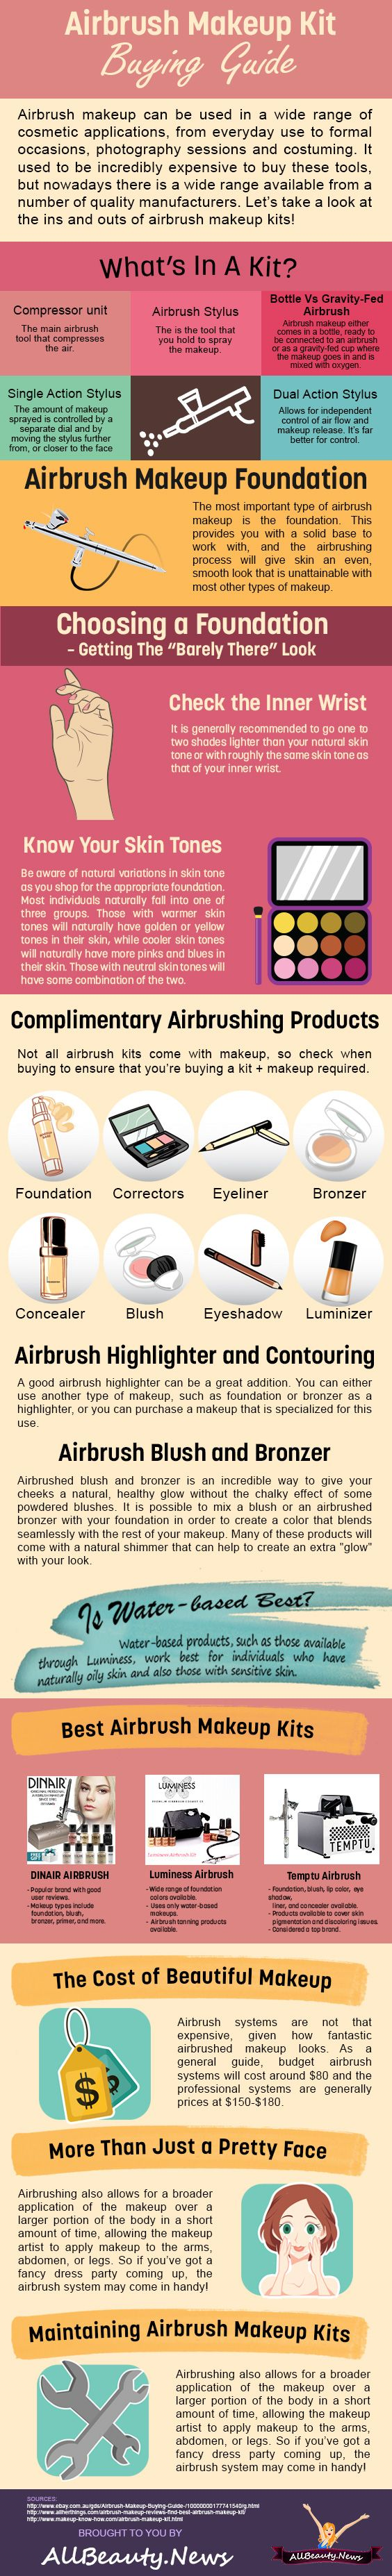 When it comes to makeup application, nothing creates a smoother finish than airbrush makeup; It really is the best makeup option, which is why it is so popular with celebrities and everyday people alike. When it comes to finding a airbrush makeup kit for you, it is important to do your research because many of the top models and cost up to $200. It's definitely a decision you want to get right, so that you find a model that suits you but now and future.